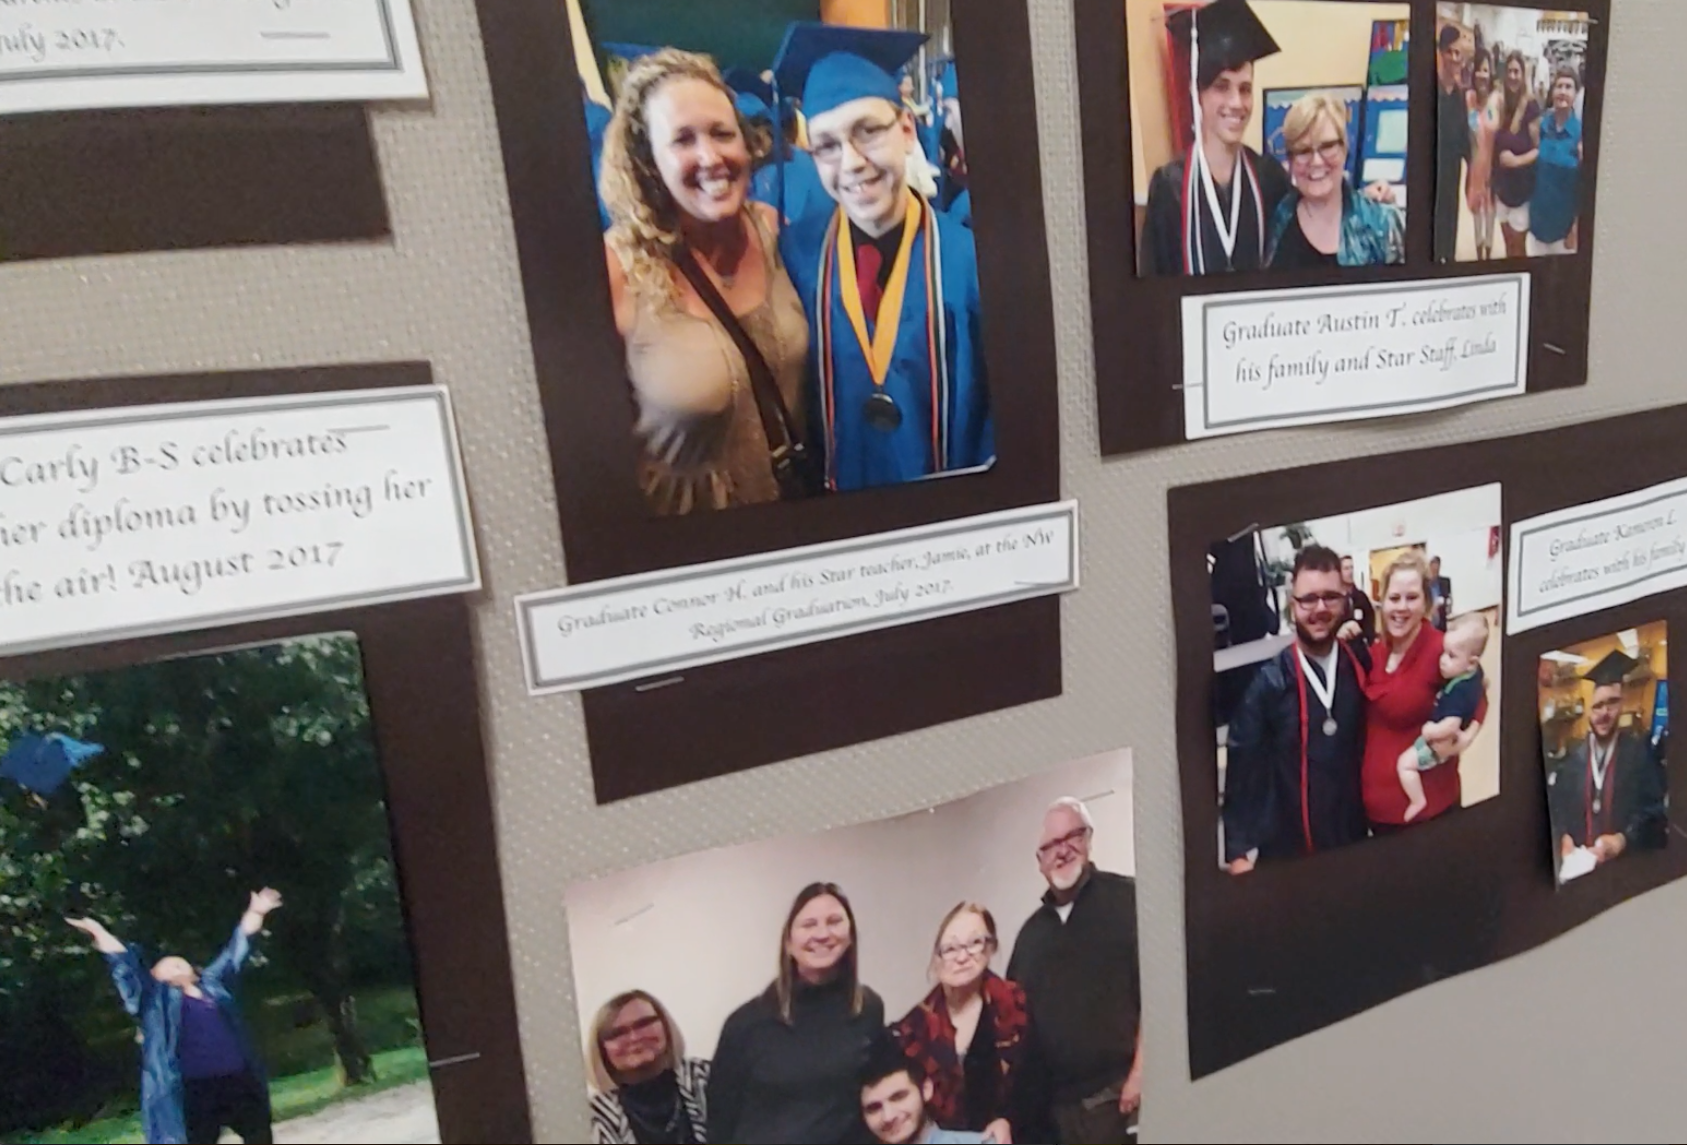 The Star School Kansas City office posts pictures from their students' graduation ceremonies throughout Missouri.